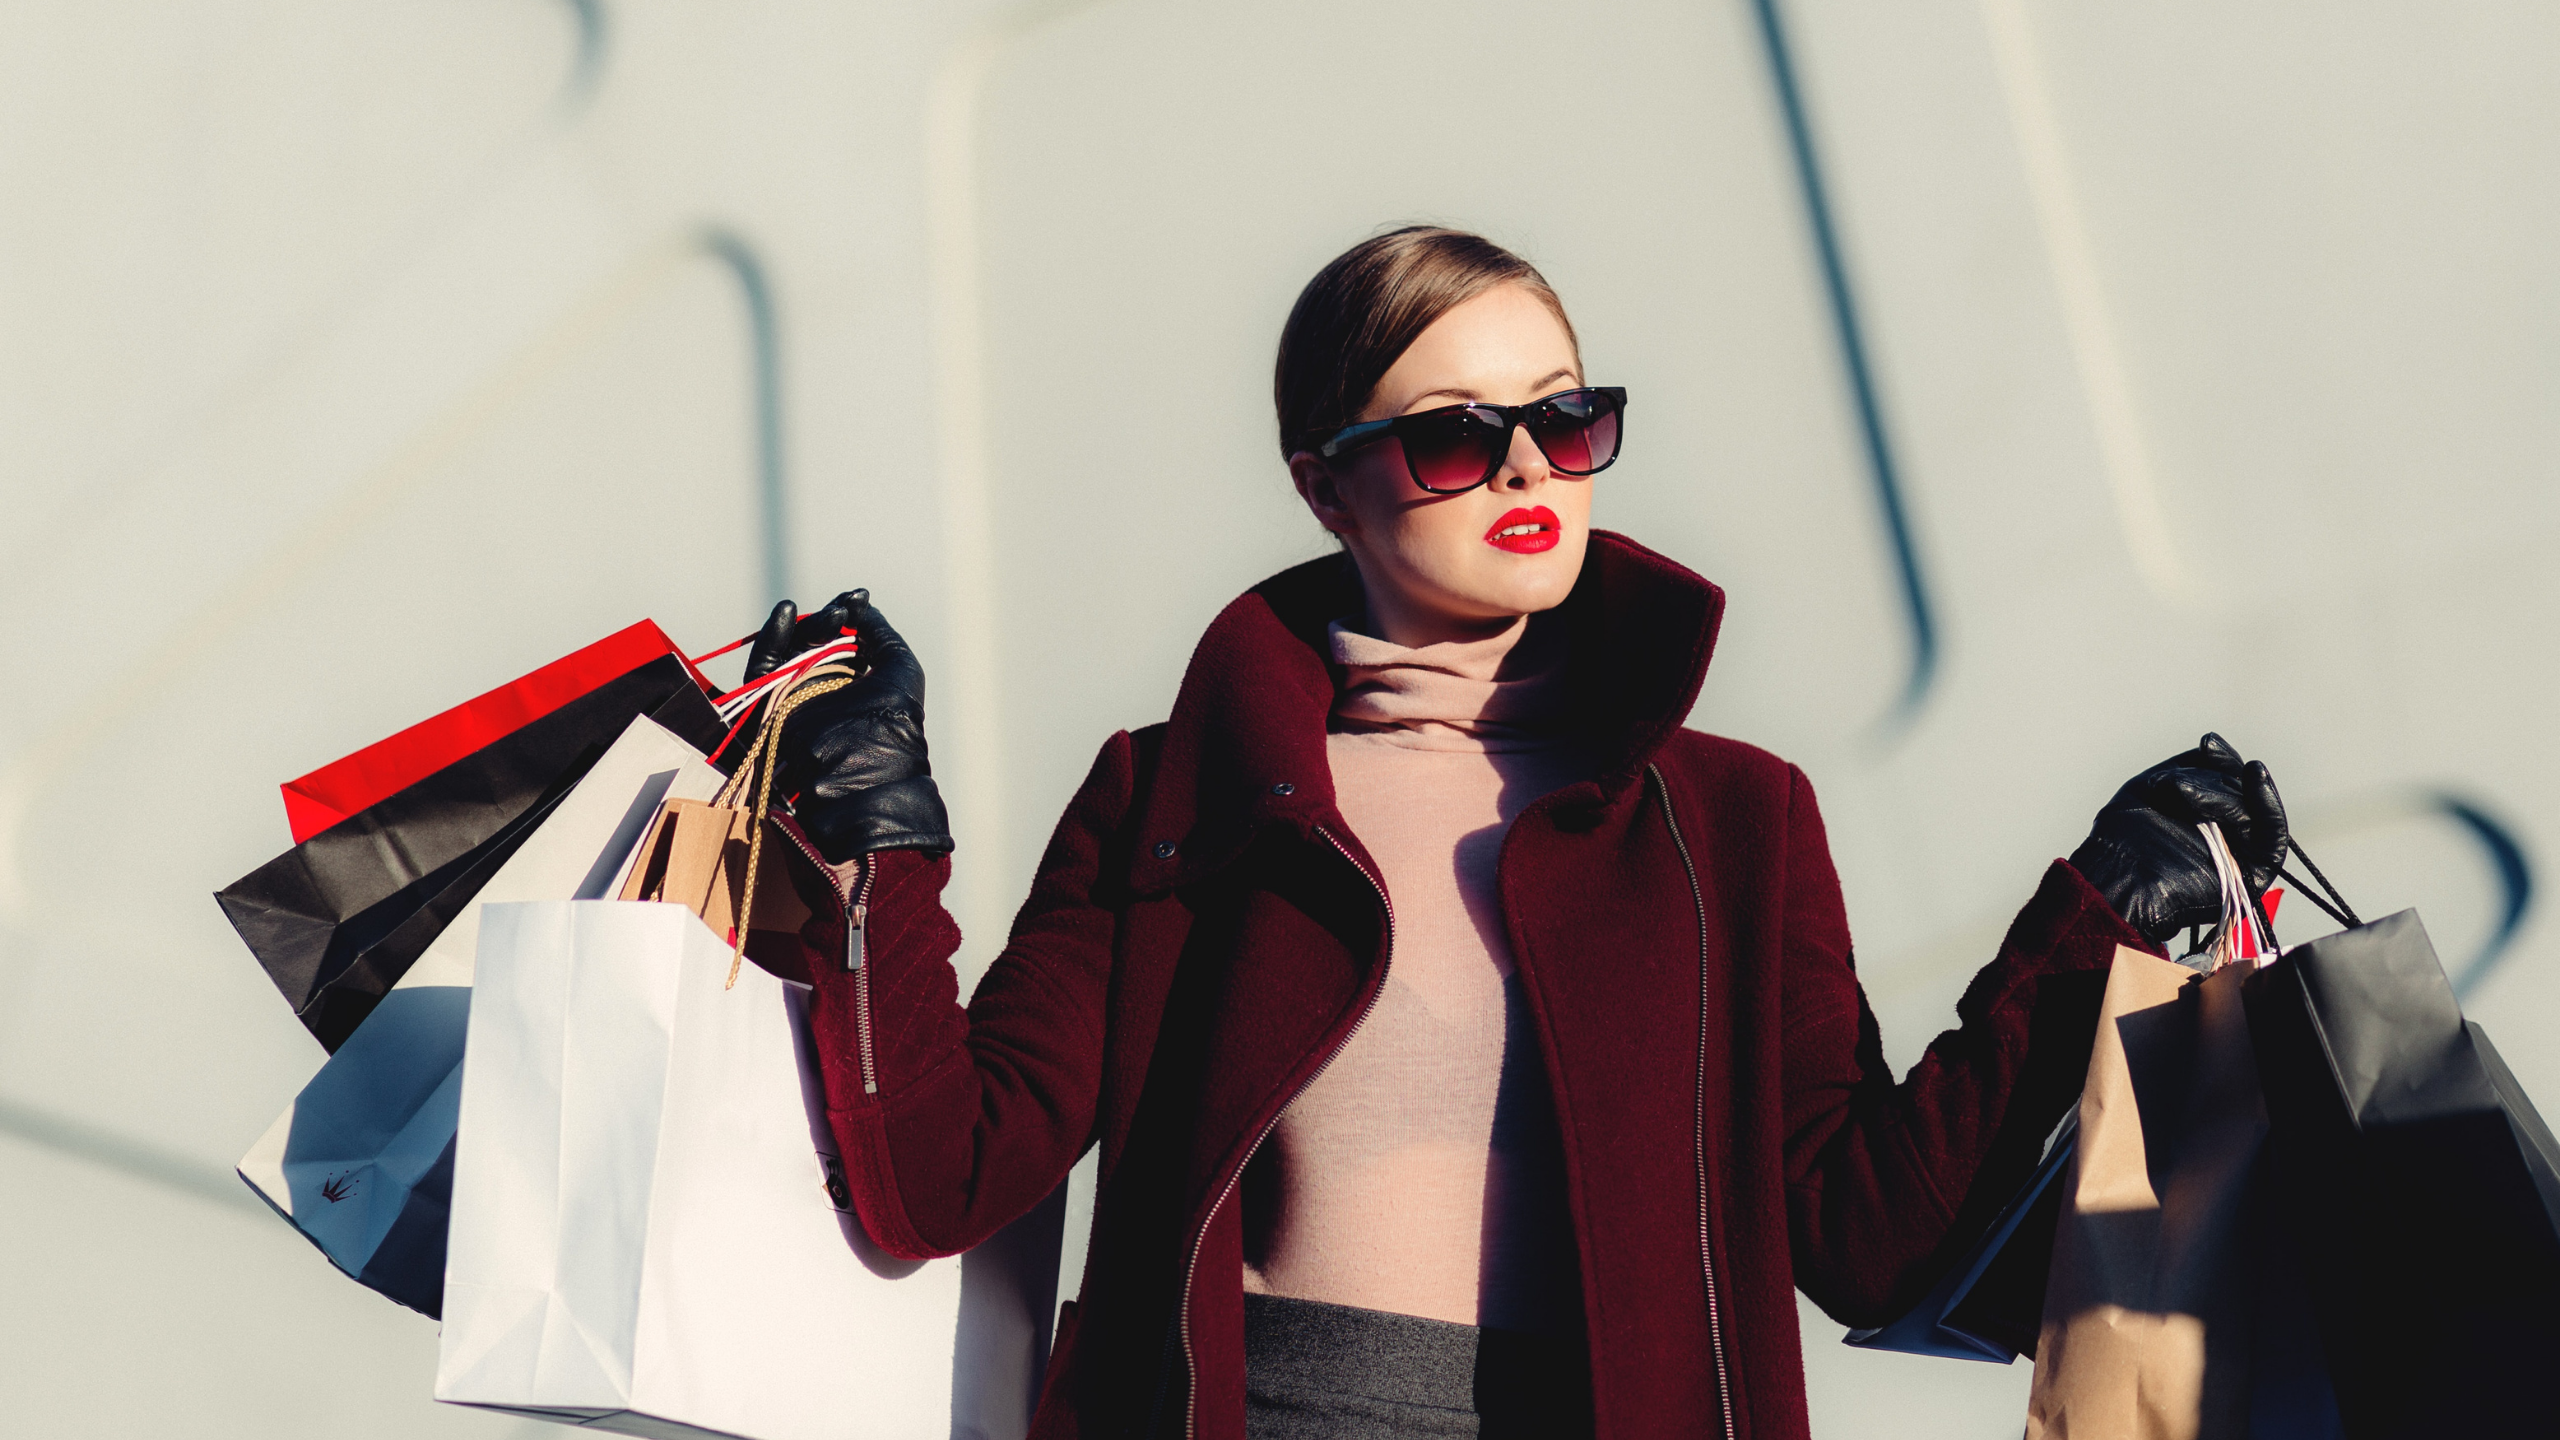 Fall Fashion Trends 5: 5 Must-Have Outfits for This Season